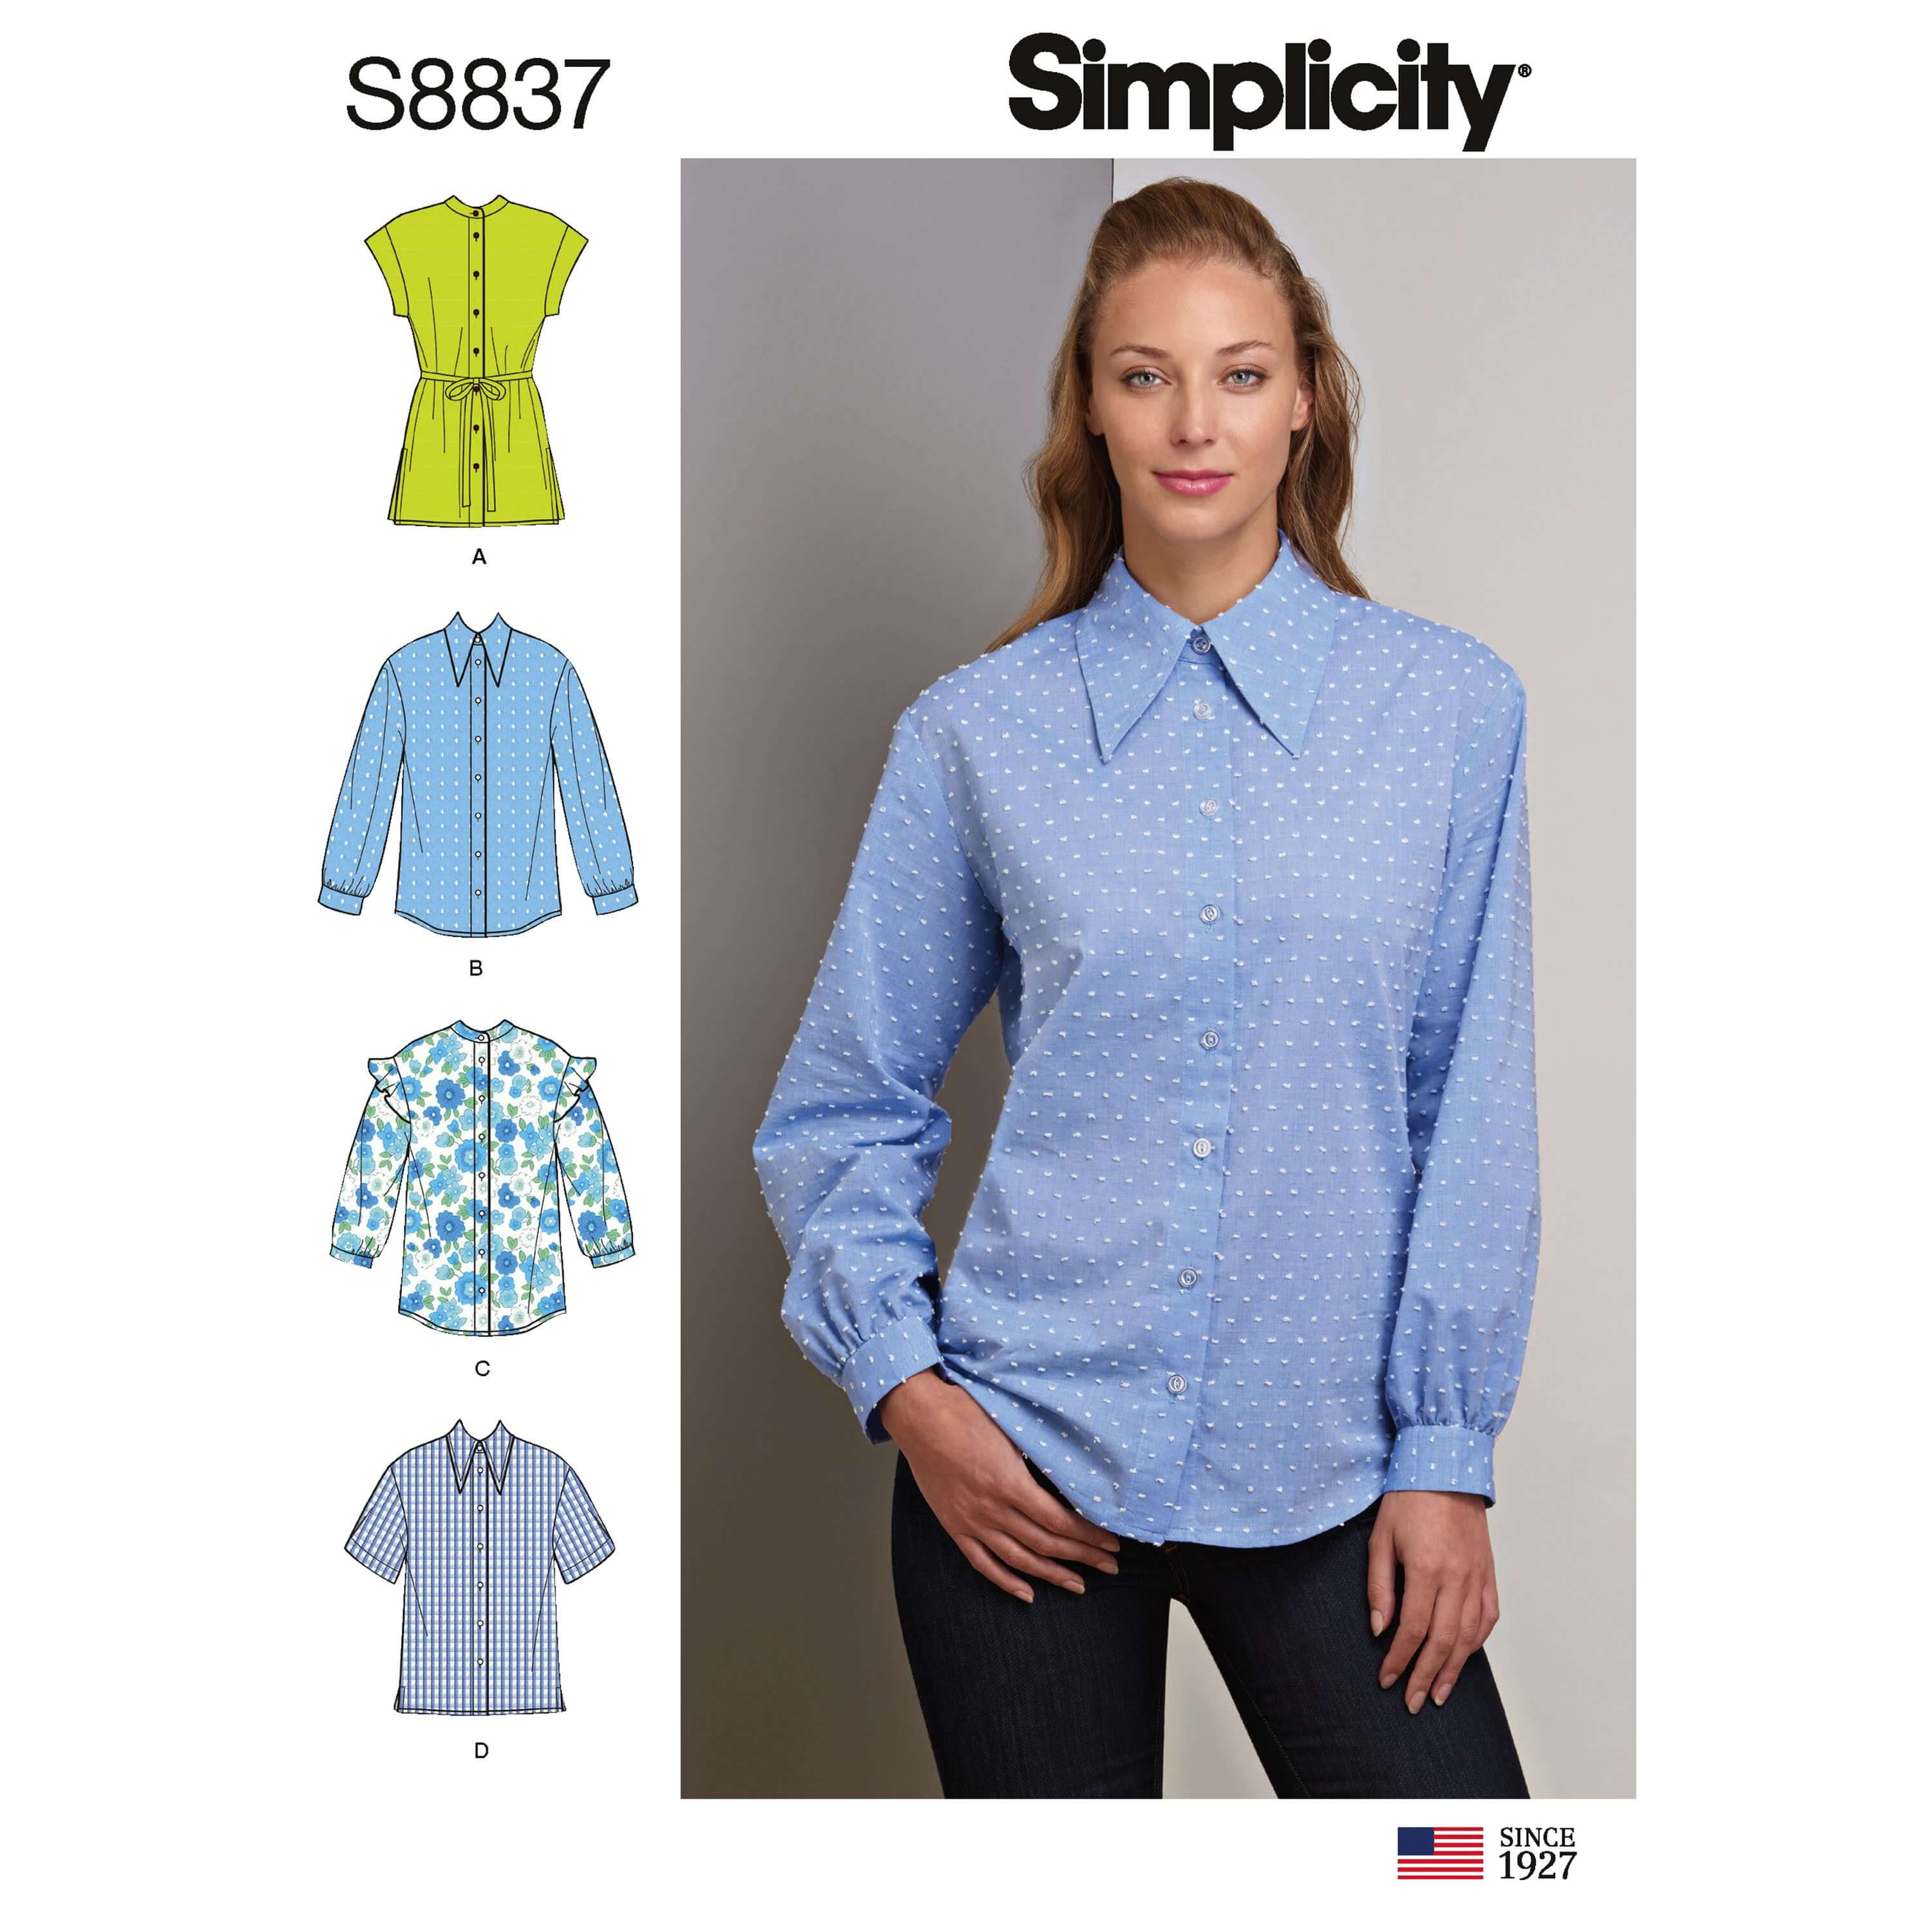 Simplicity Sewing Pattern 8837 Misses'/ Miss Petite Collared Shirt